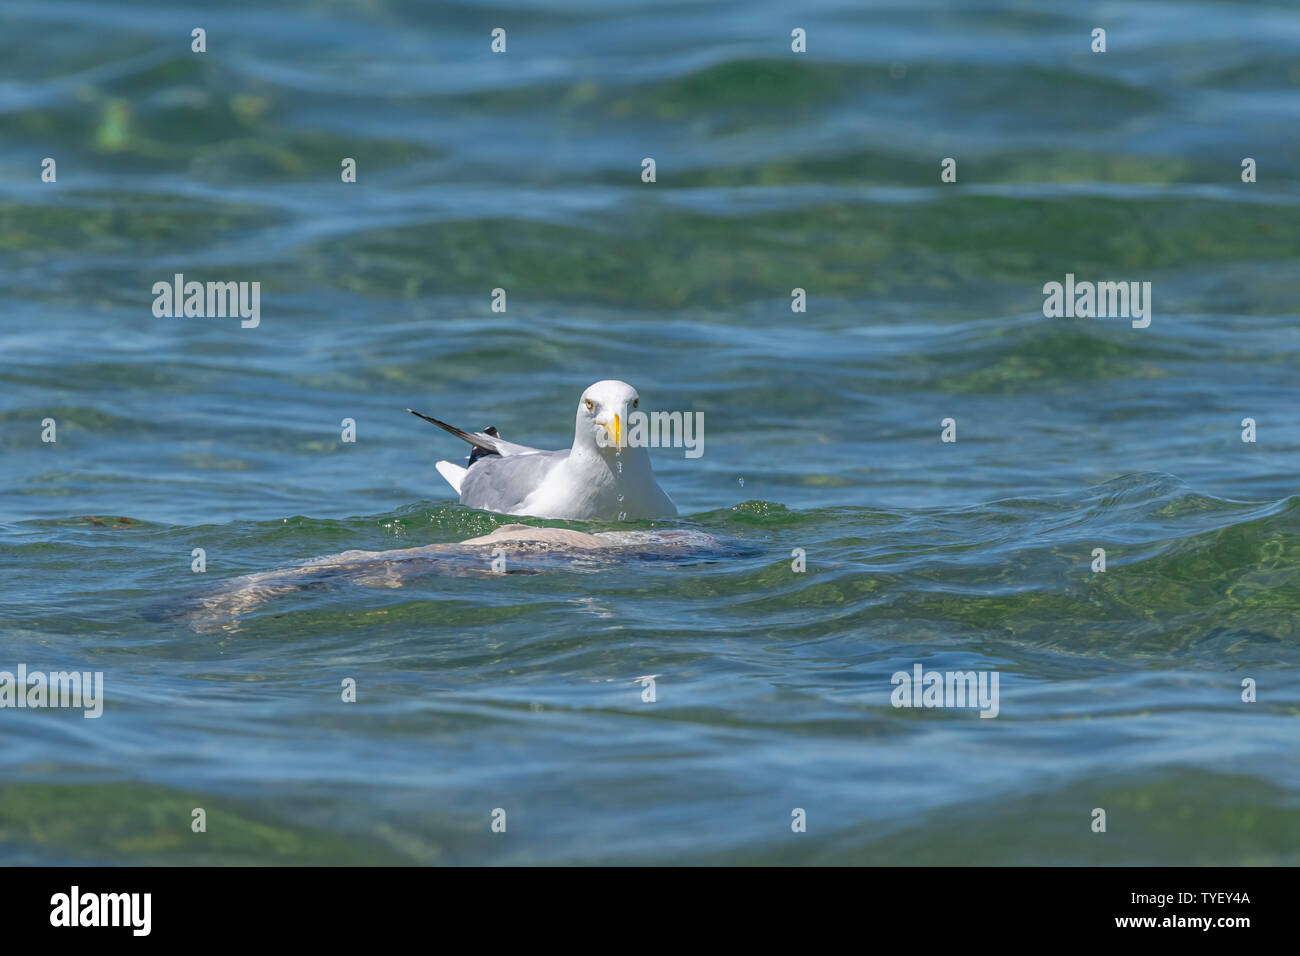 Herring gull (Larus argentatus) feeding on a dead fish (believed to be a common carp (Cyprinus carpio)) in Lake Michigan, USA. Stock Photo